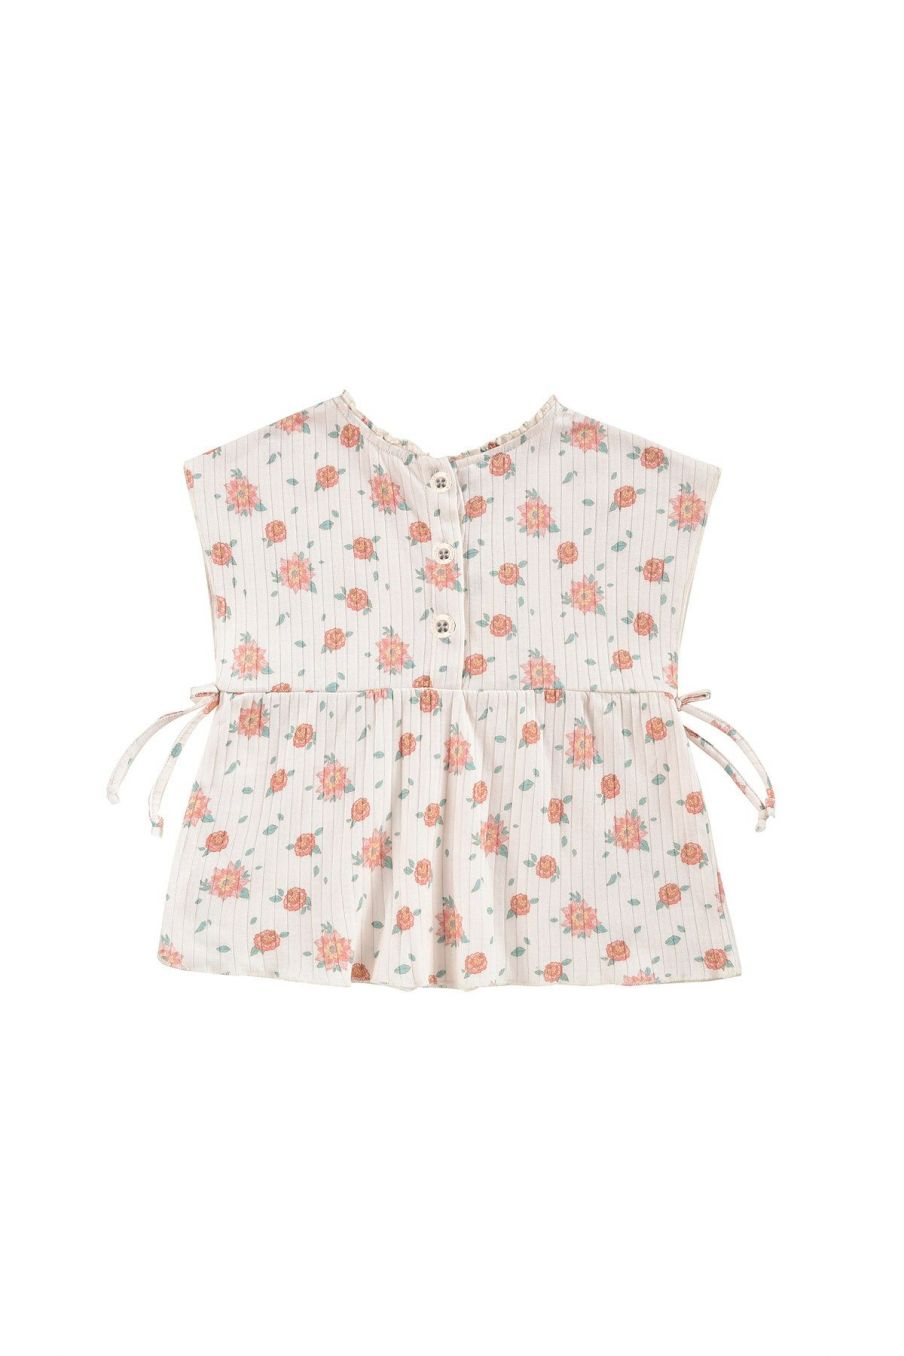 boheme chic vintage top fille angika off-white flowers